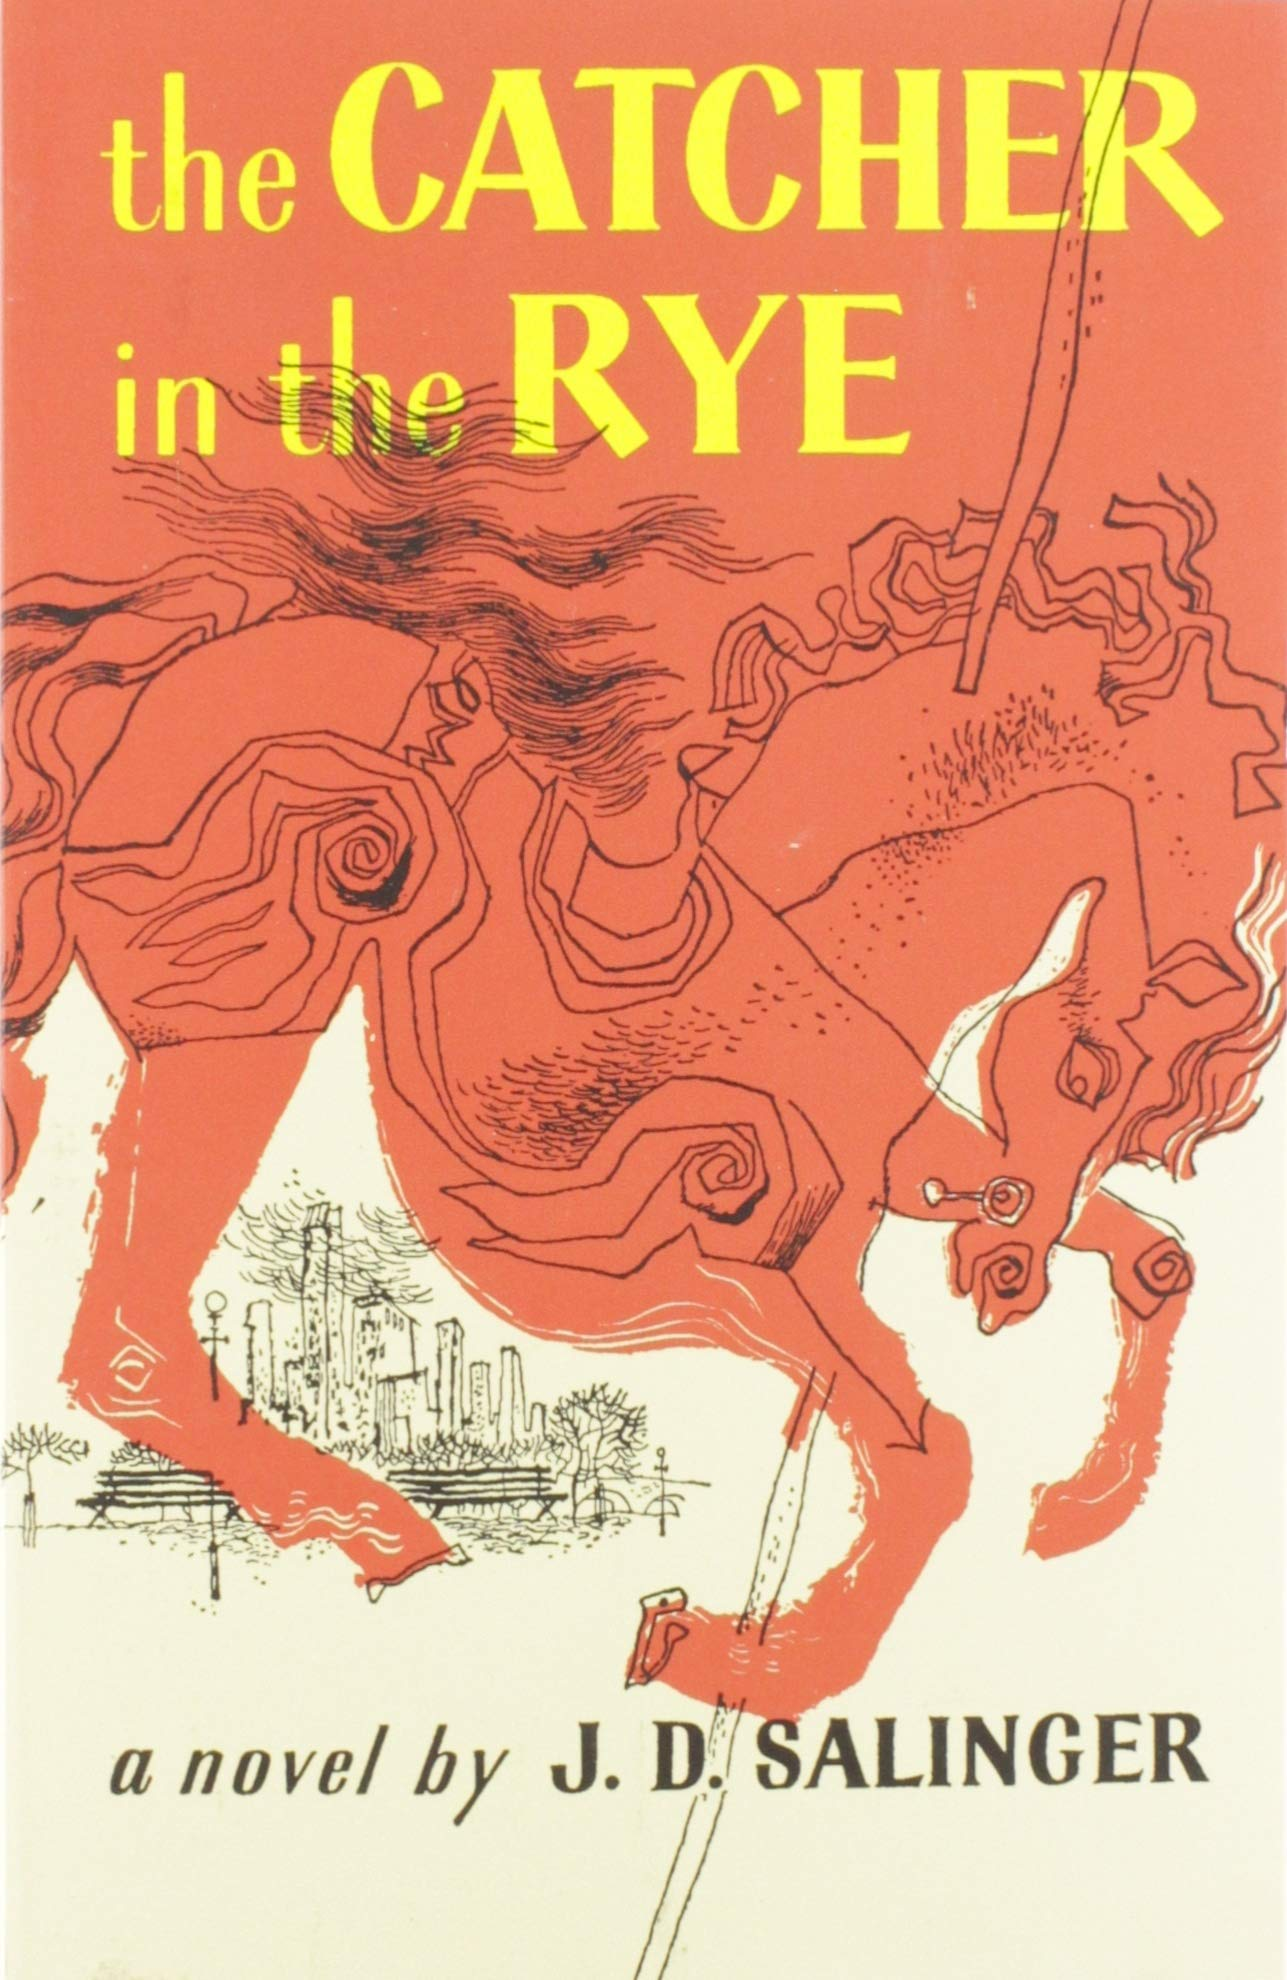 The Catcher in the Rye by J. D. Salinger - Book for teens